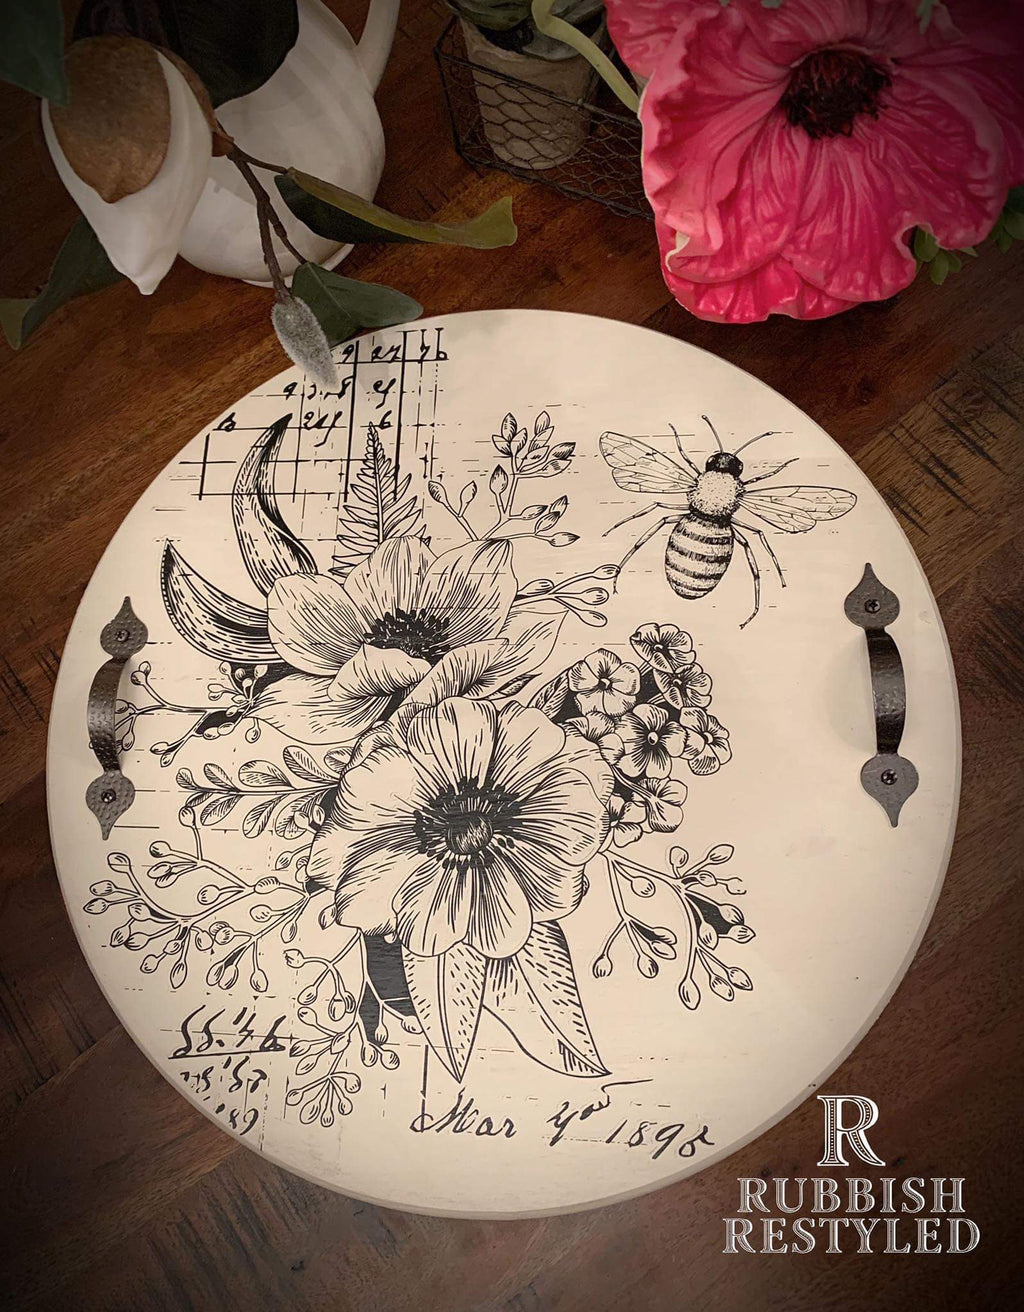 March 7th | 1:30 - 4:00 | Decorative Tray with Kimberly